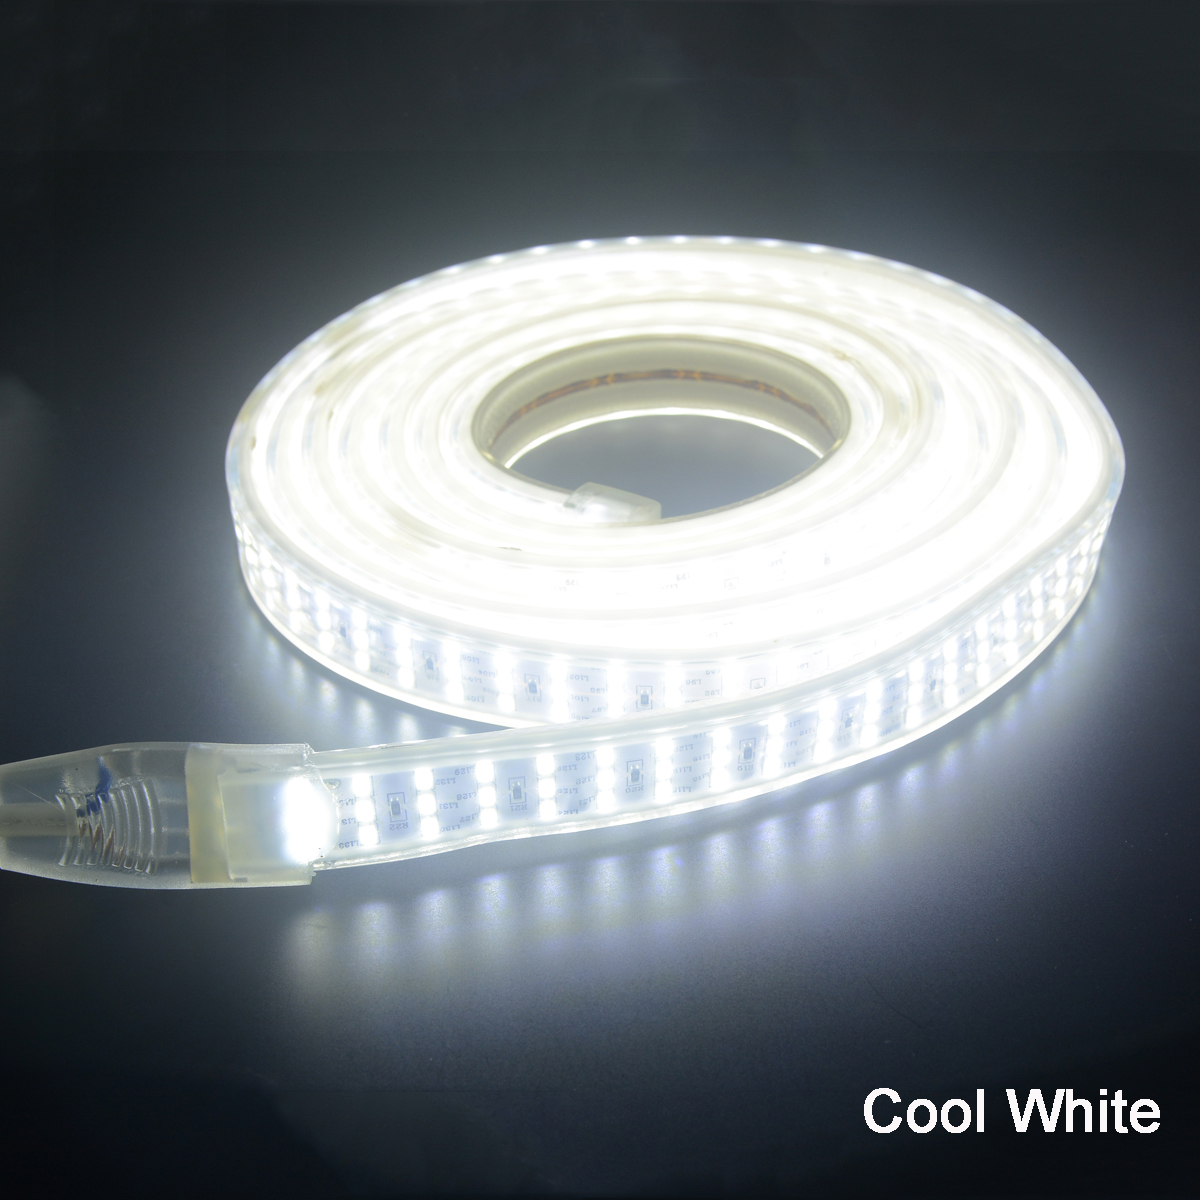 Led Strip Light 220v SMD 2835 Flexible Tape 276 Leds/m 1m 2m 4m 5m 6m 7m 8m 9m + Power EU Plug